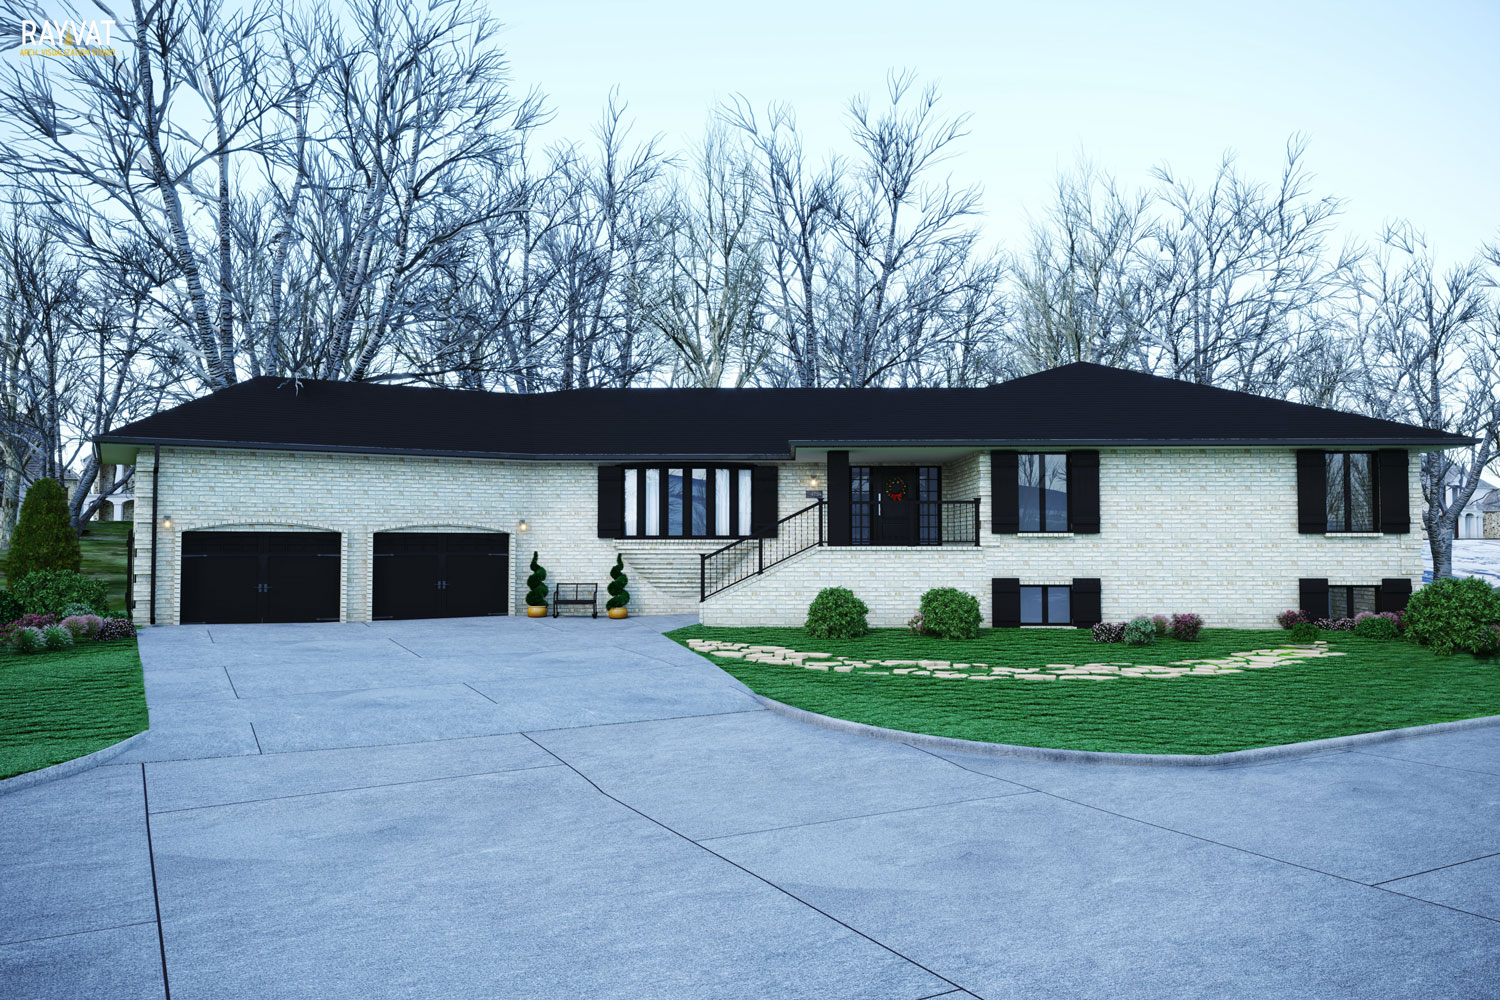 3D RENDERING SERVICES NAPERVILLE, ILLINOIS